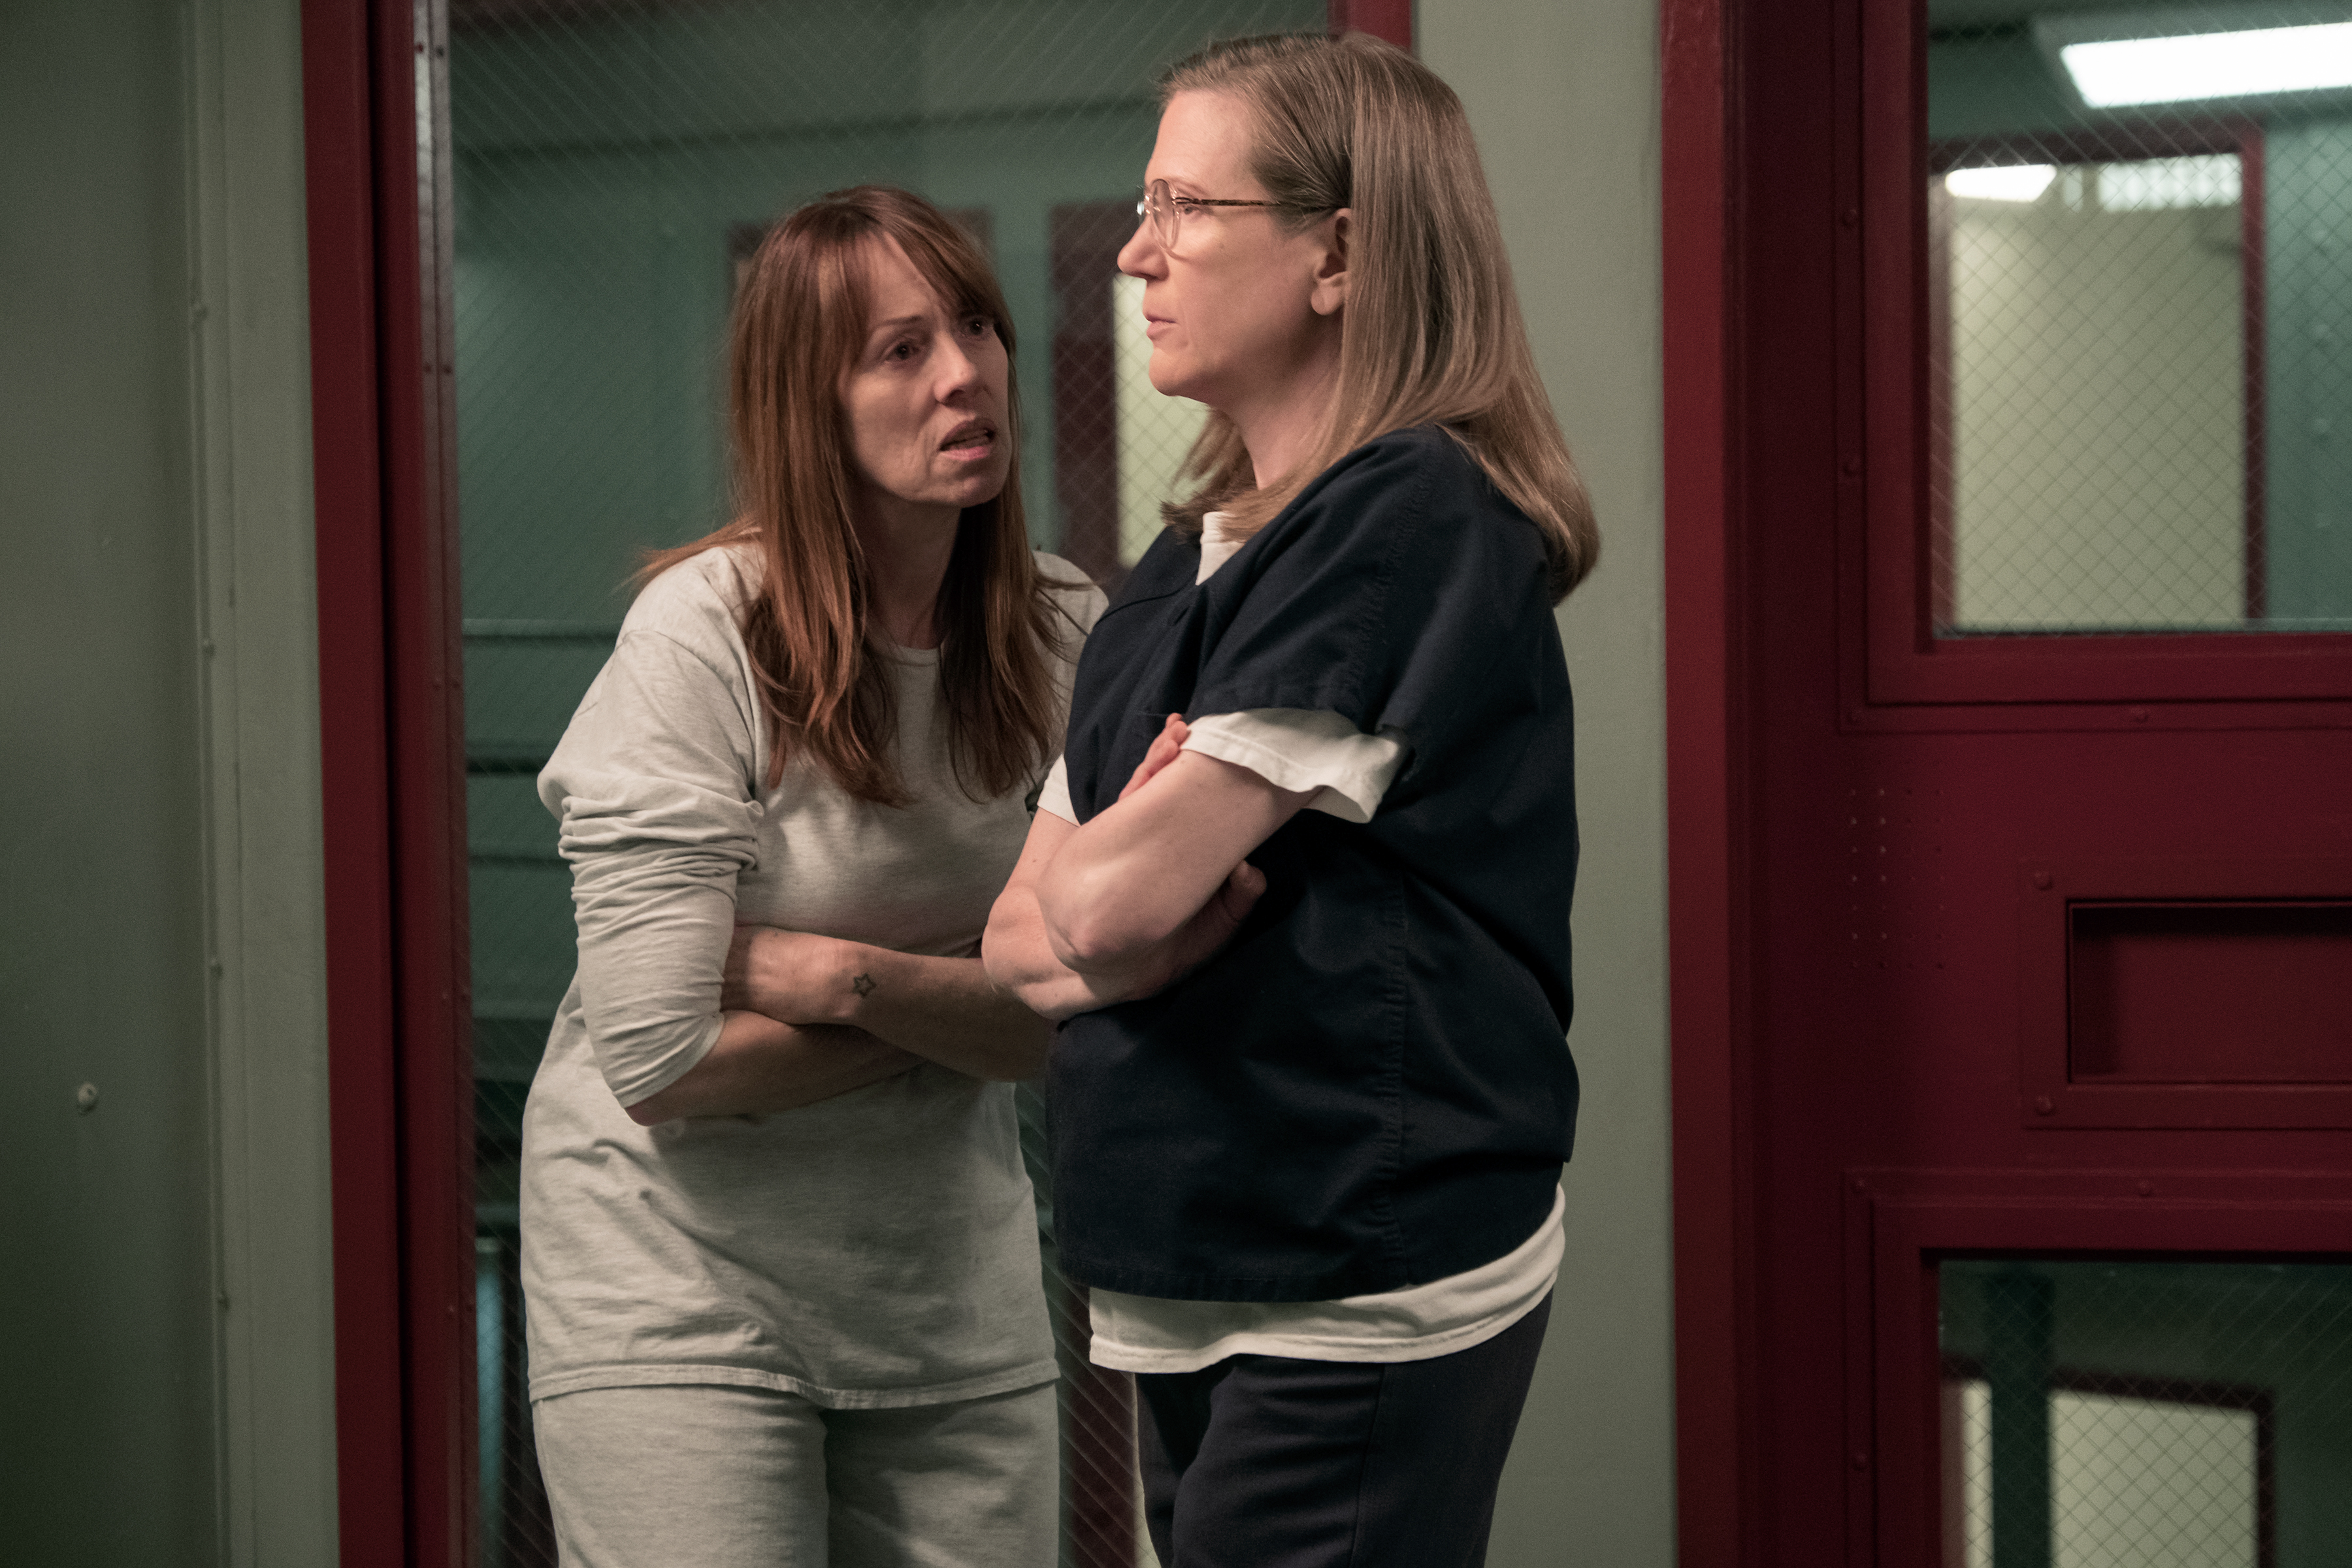 Mackenzie Philips (left) and Henny Russell on 'Orange Is the New Black'Source: Netflix